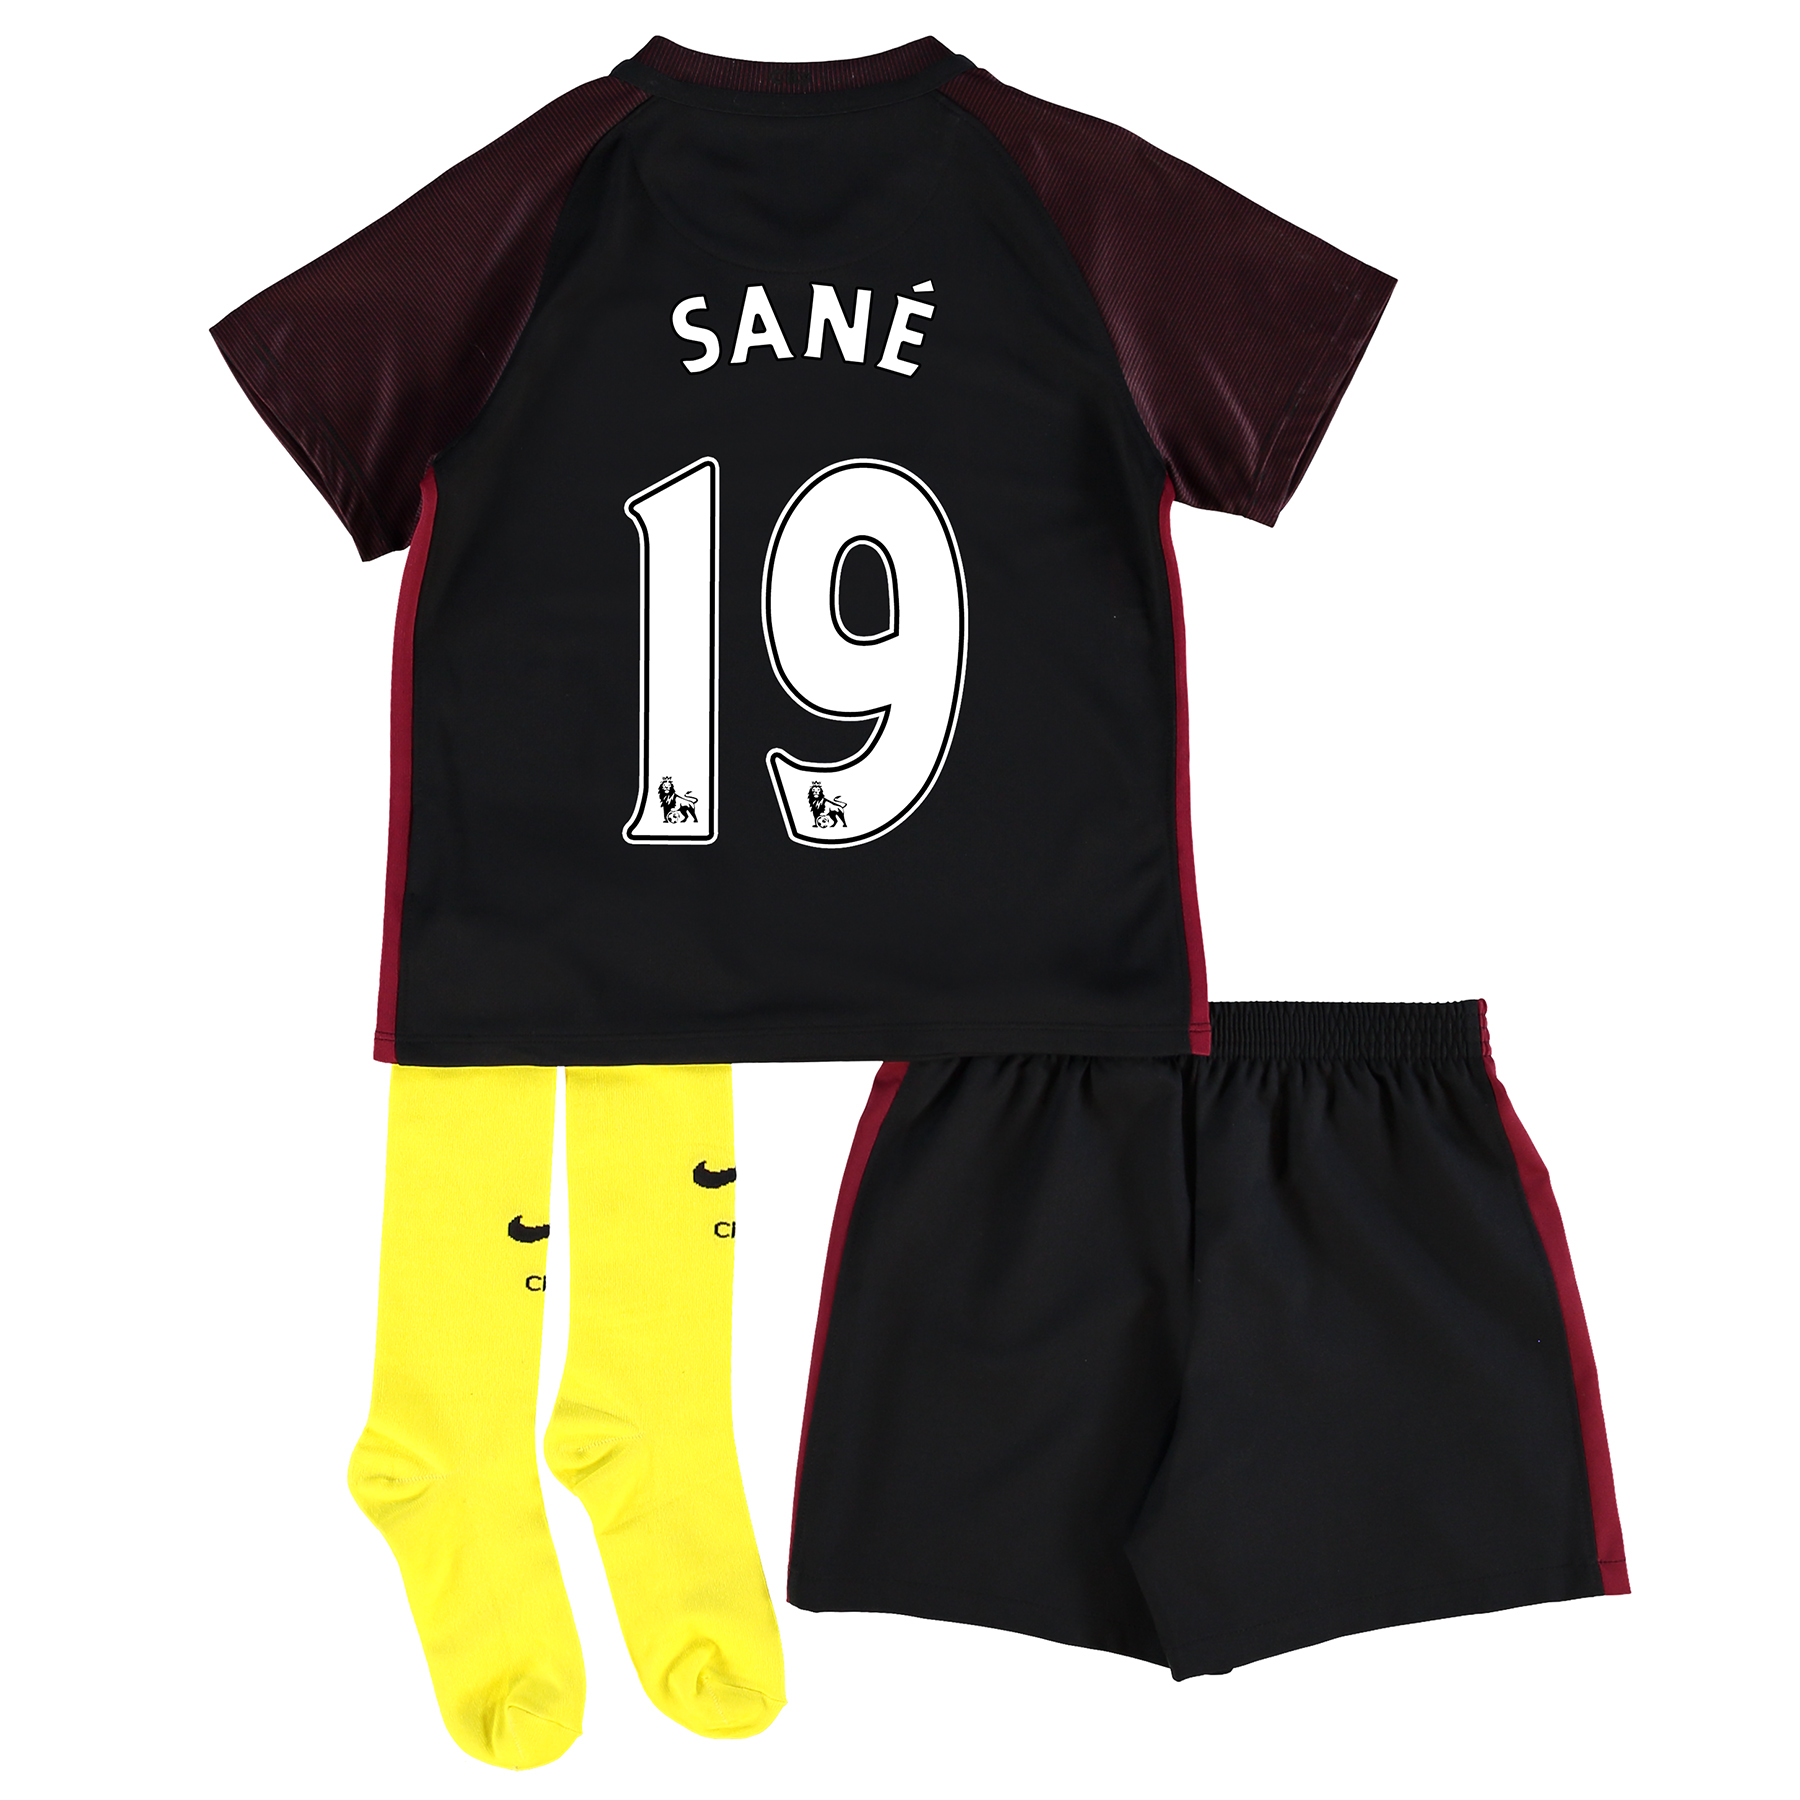 Manchester City Away Stadium Kit 2016-17 - Little Kids with San?® 19 pr